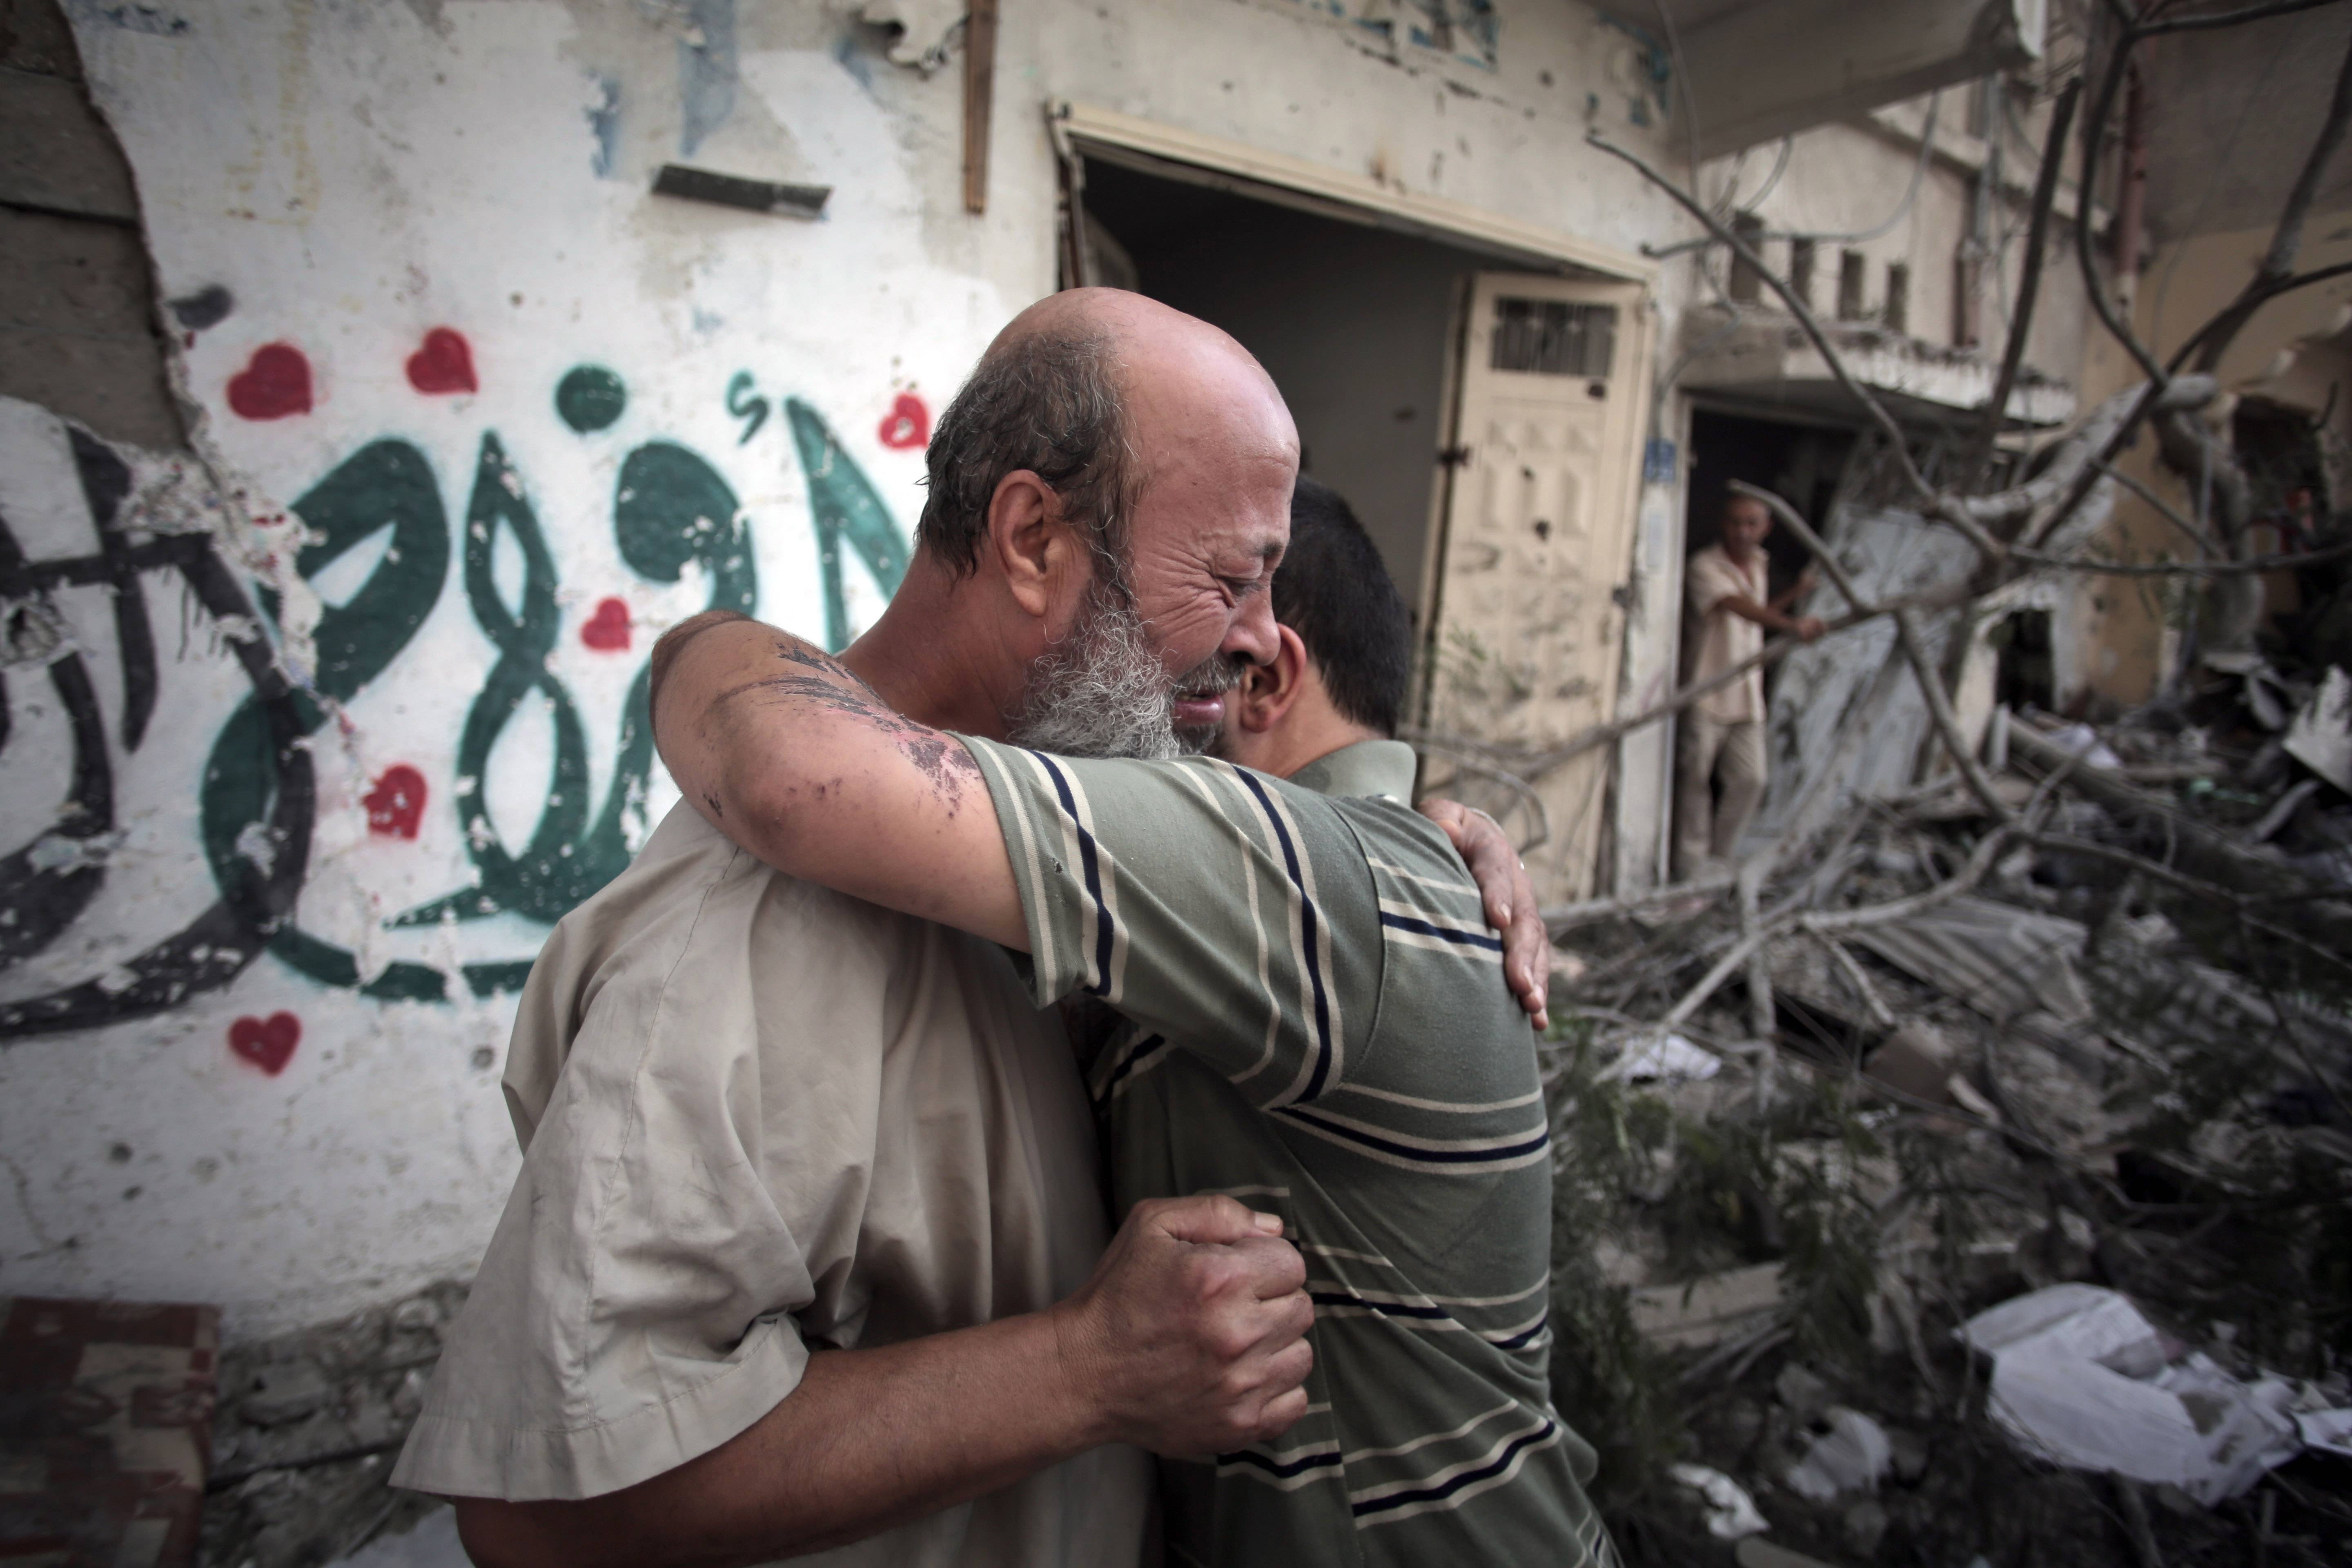 Palestinians hug each other after seeing their homes destroyed, during a 12-hour cease-fire in Gaza City's Shijaiyah neighborhood, Saturday, July 26. Gaza residents used a 12-hour humanitarian cease-fire on Saturday to stock up on supplies and survey the devastation from nearly three weeks of fighting, as they braced for a resumption of Israel's war on Hamas amid stalled efforts to secure a longer truce.